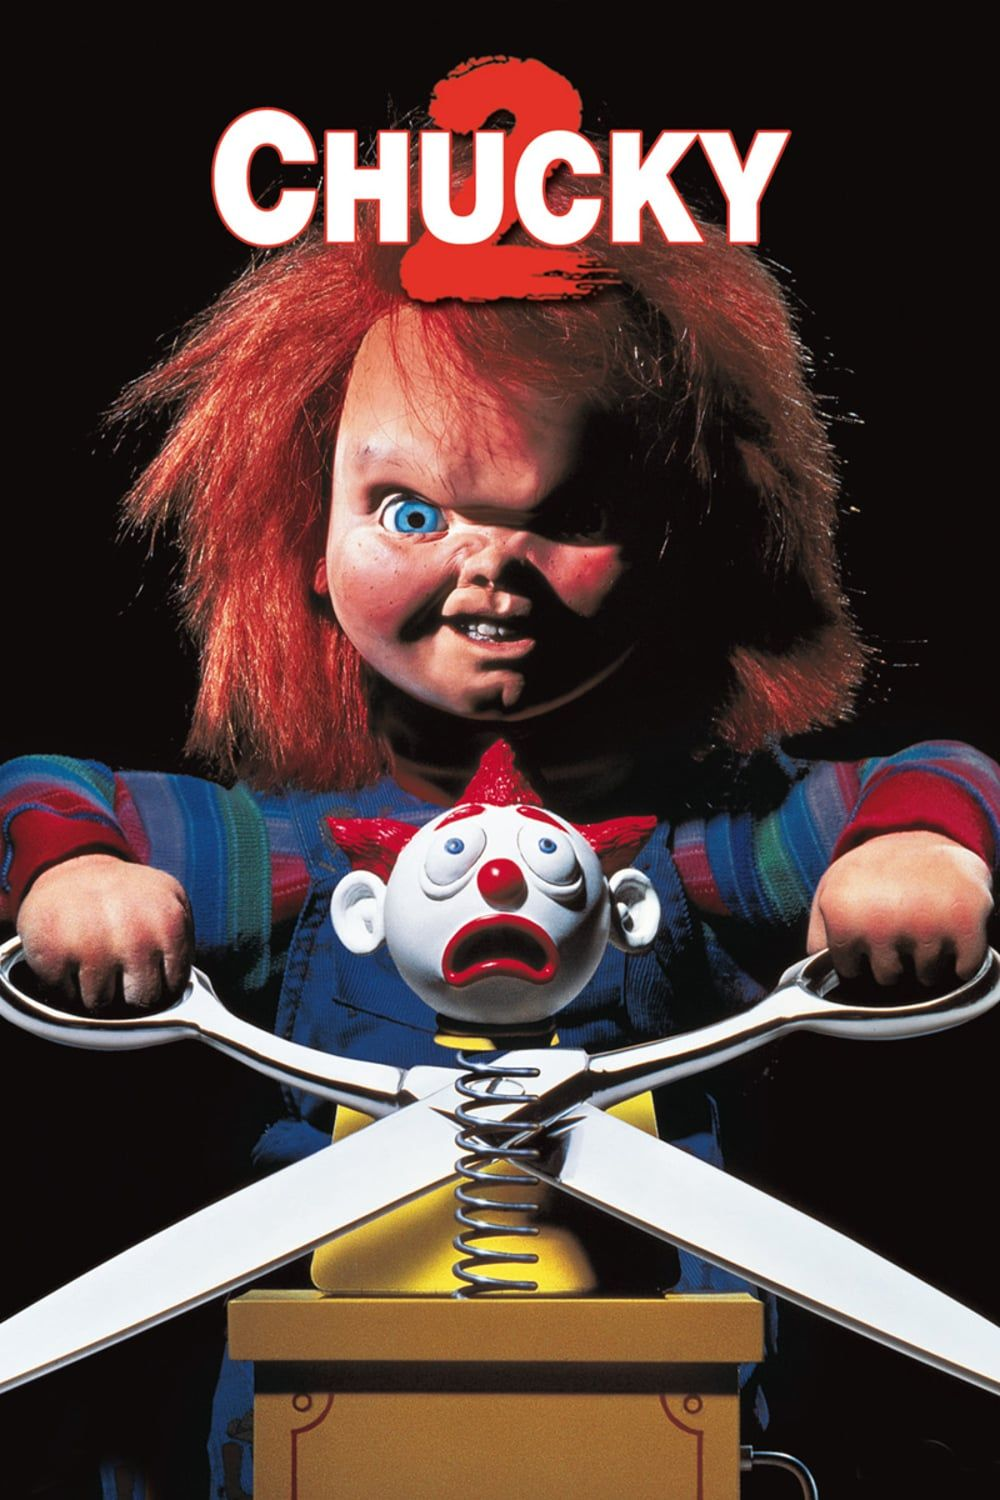 Child S Play 2 Pelicula Completa 1990 Español Latino Gratis En Línea Child Splay2 Movie Fullmovie Chucky Movies Classic Horror Movies Childs Play Chucky